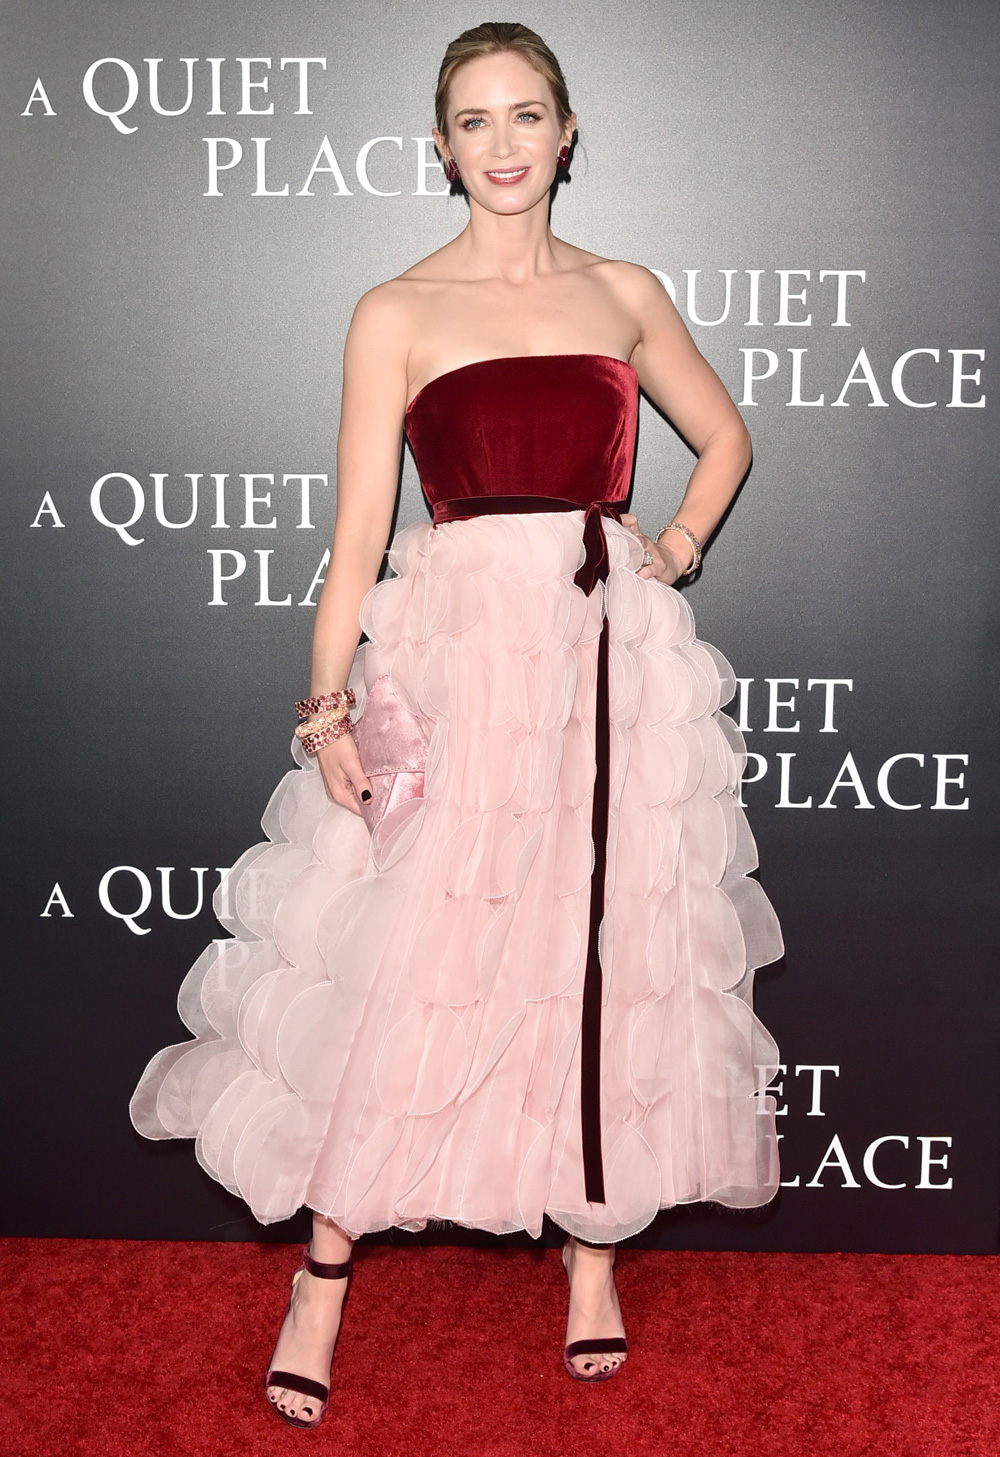 emily_blunt_in_oscar_de_la_renta_for_a_quiet_place_film_premiere.jpg